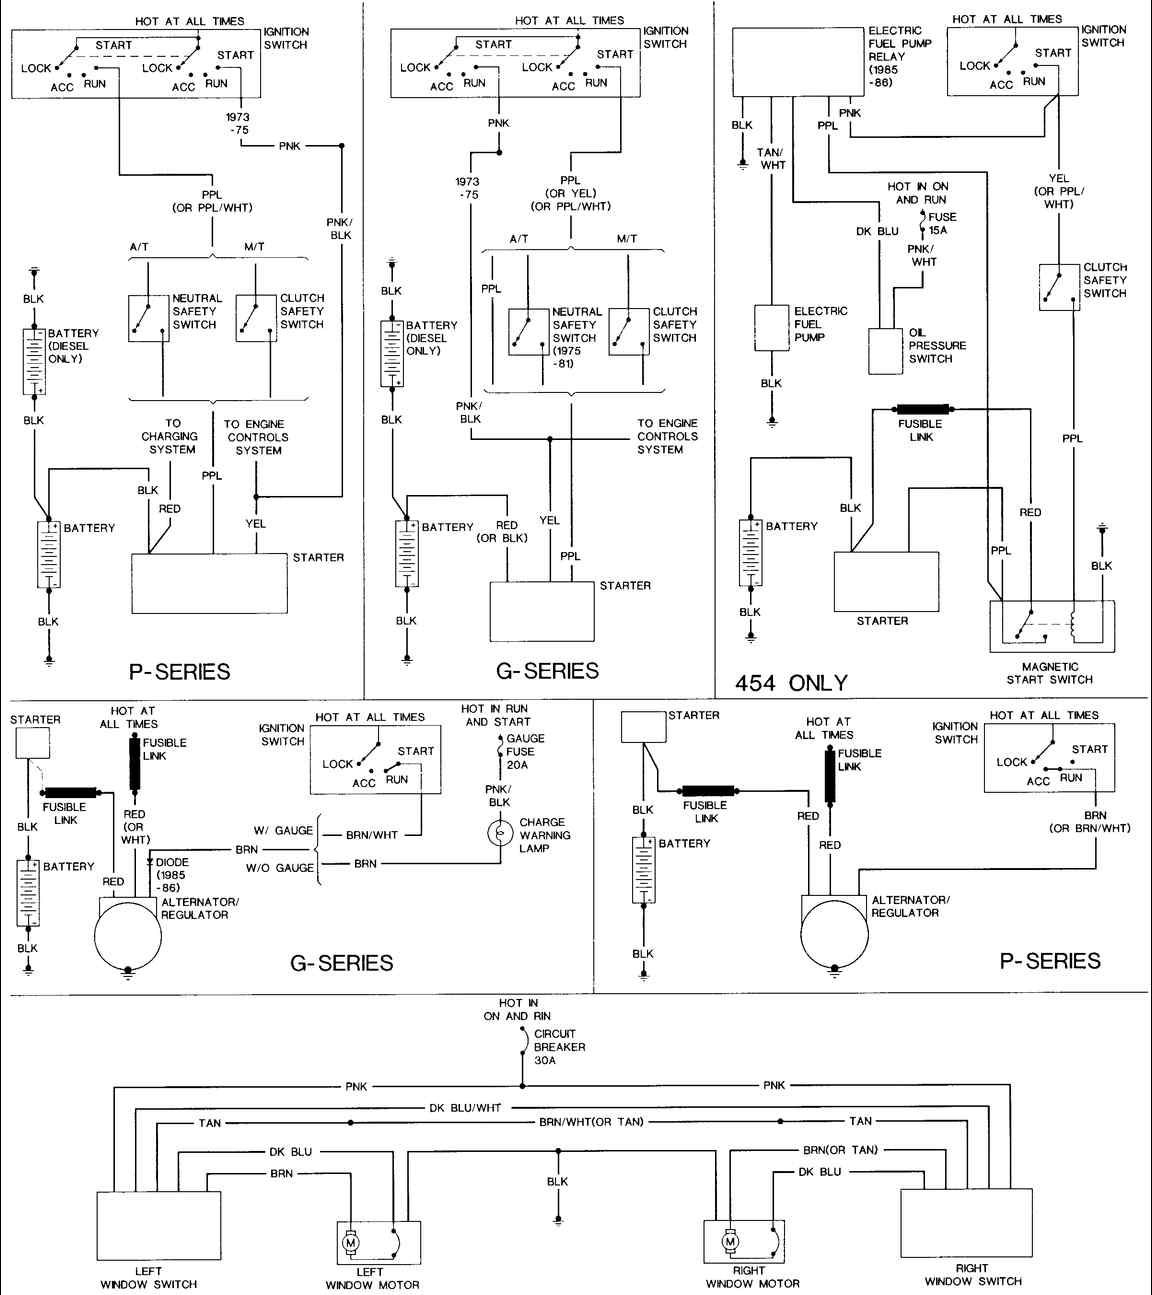 0c73623a181dc376dbb4777e2029d285 85 chevy truck wiring diagram 85 chevy van the steering column 1989 Chevy 1500 Wiring Diagram at crackthecode.co